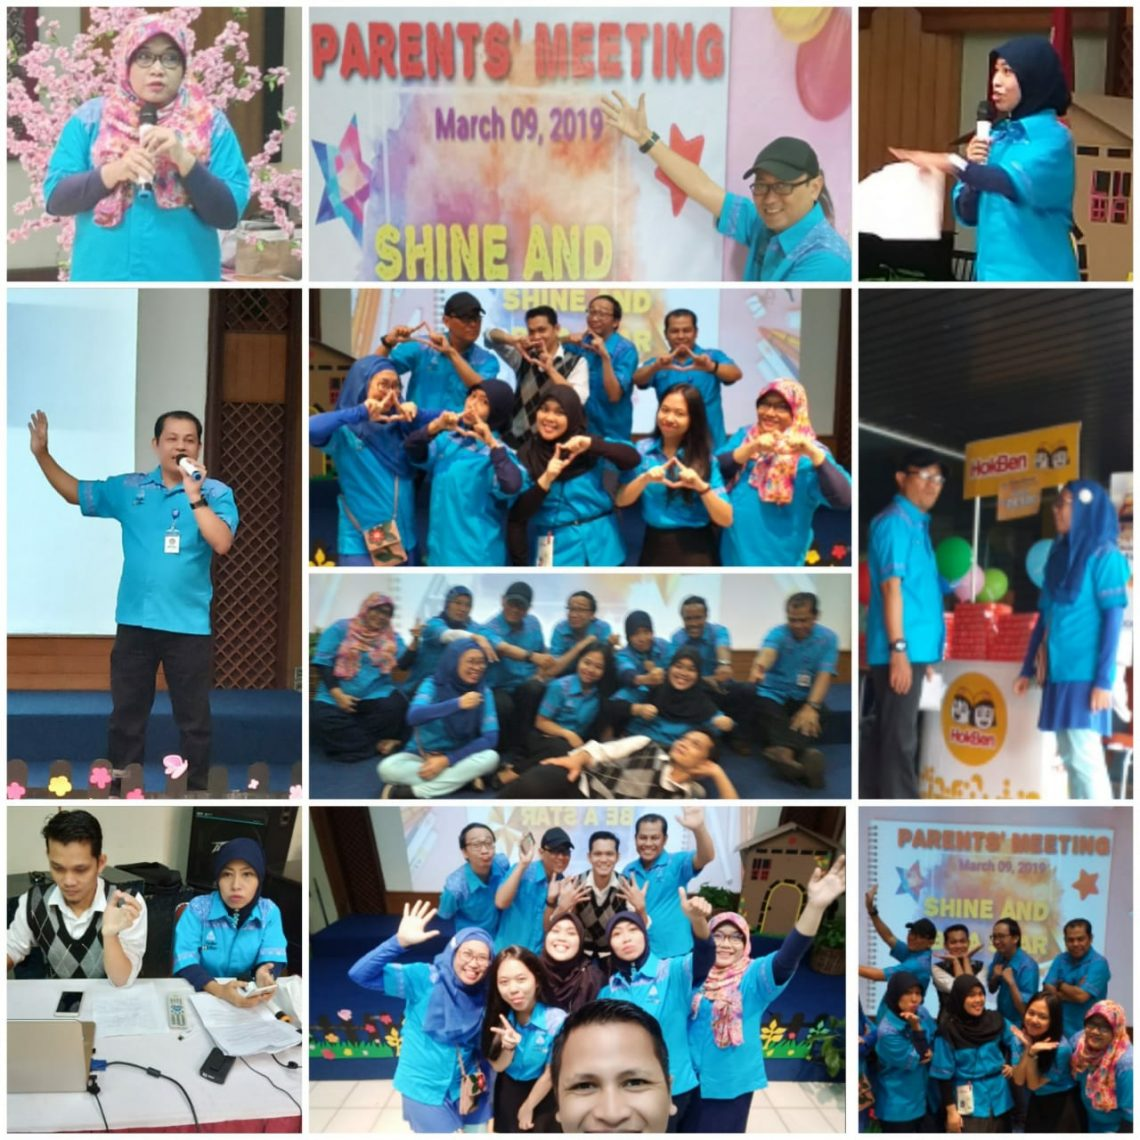 Parents' meeting